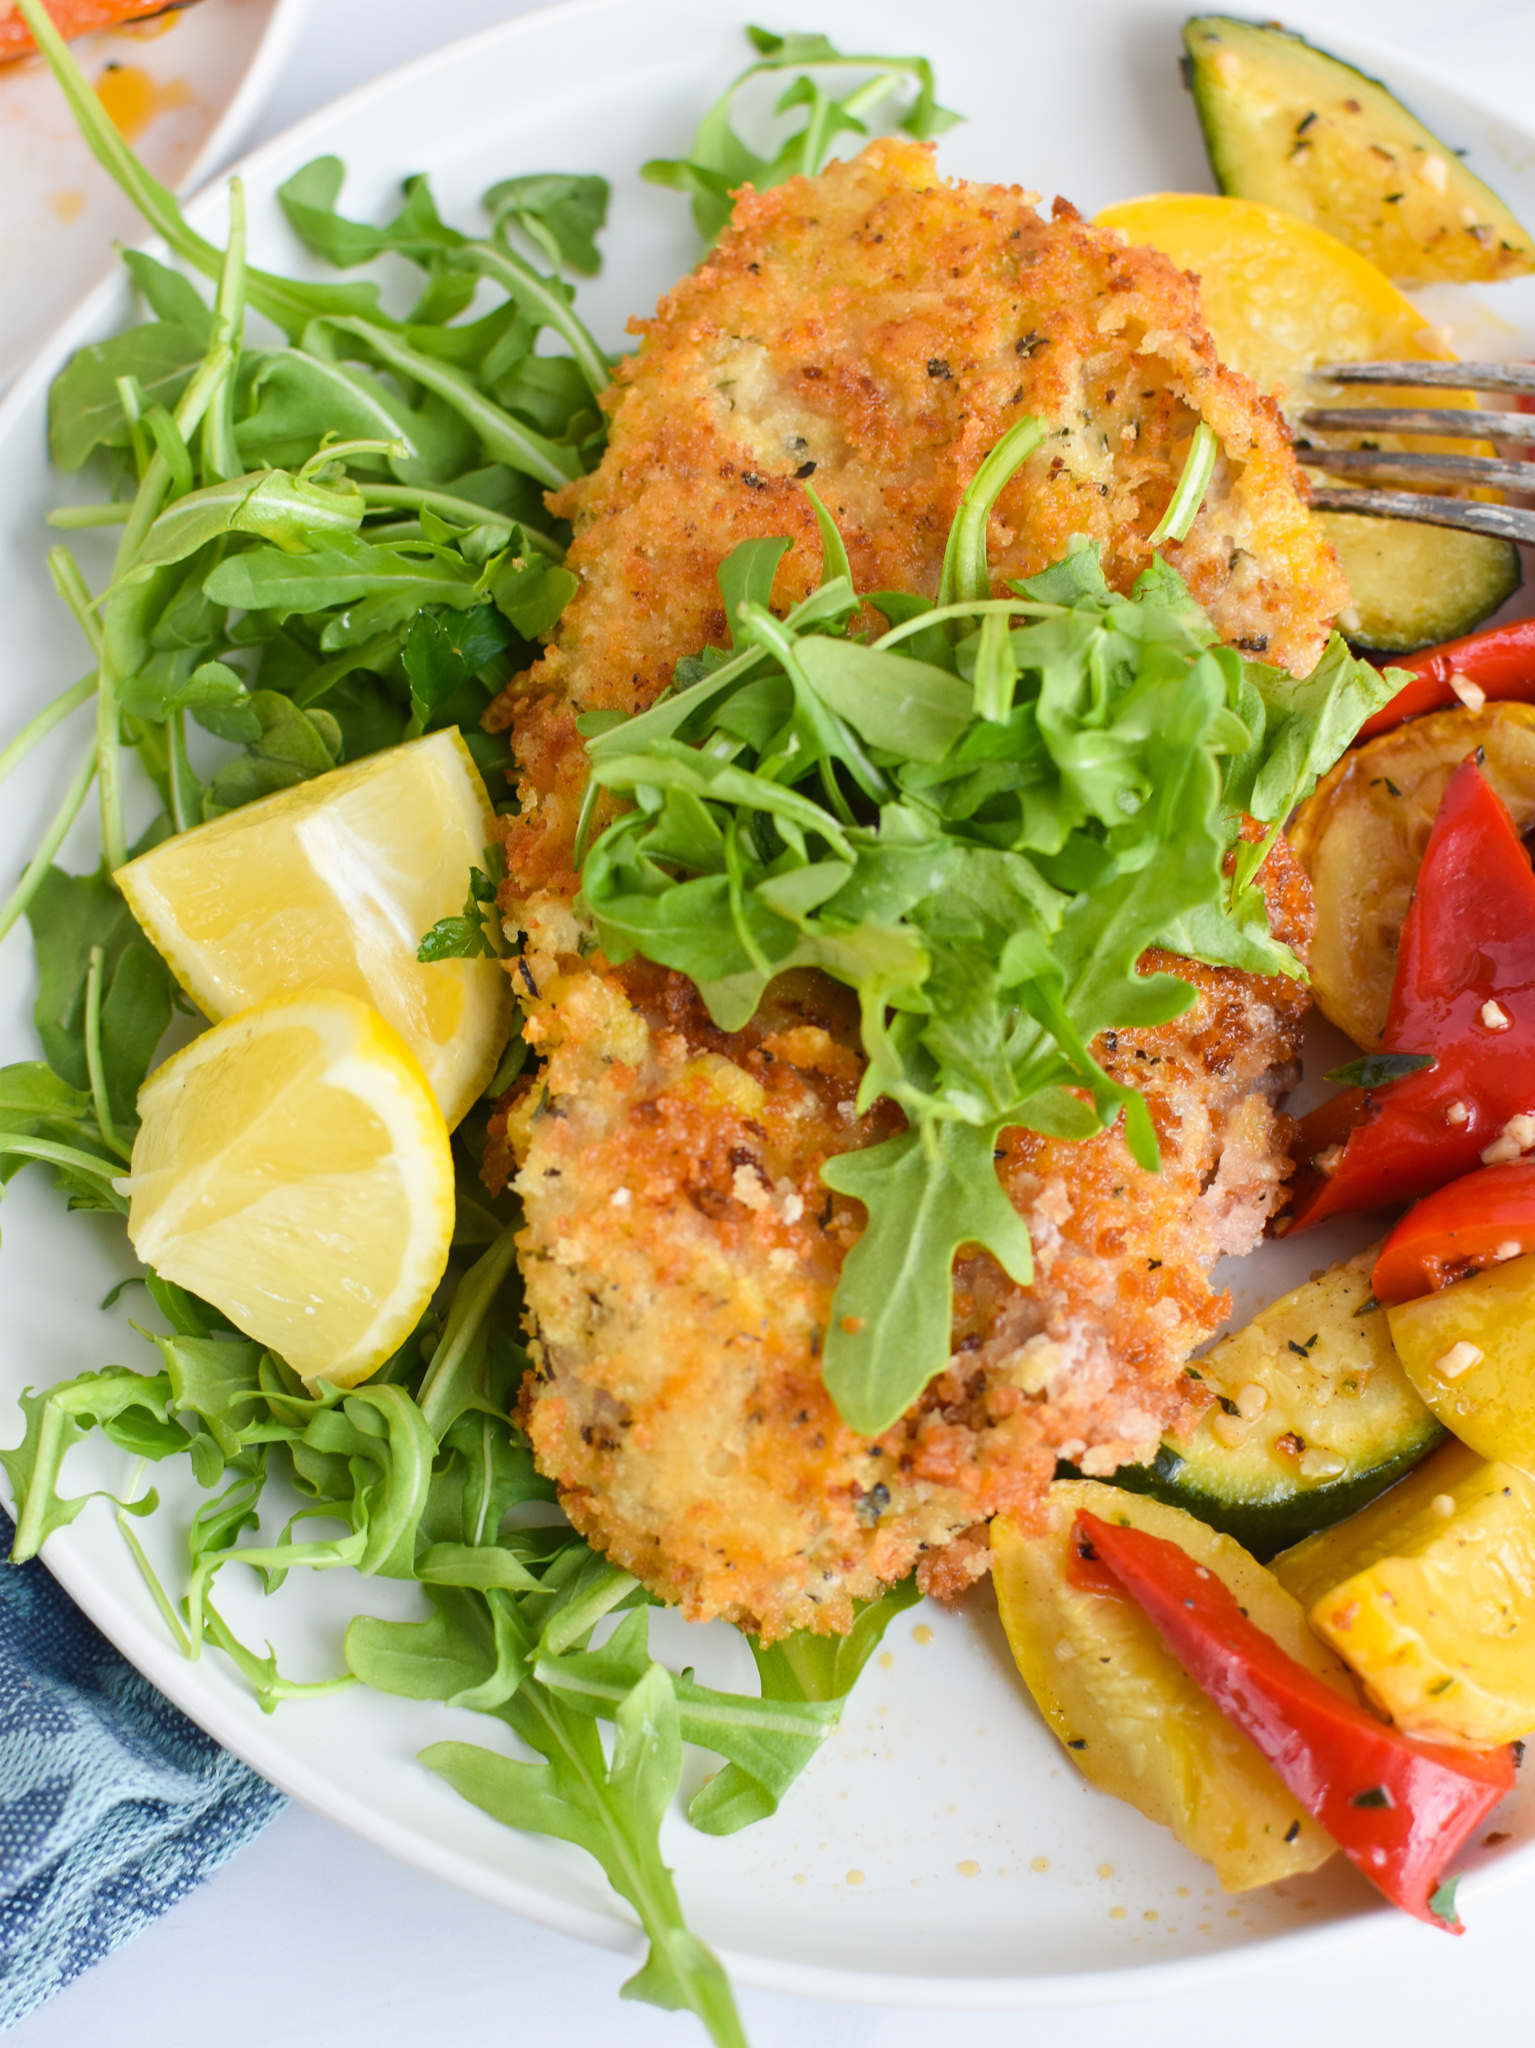 Easy Veal Milanese Recipe with lemon wedges.